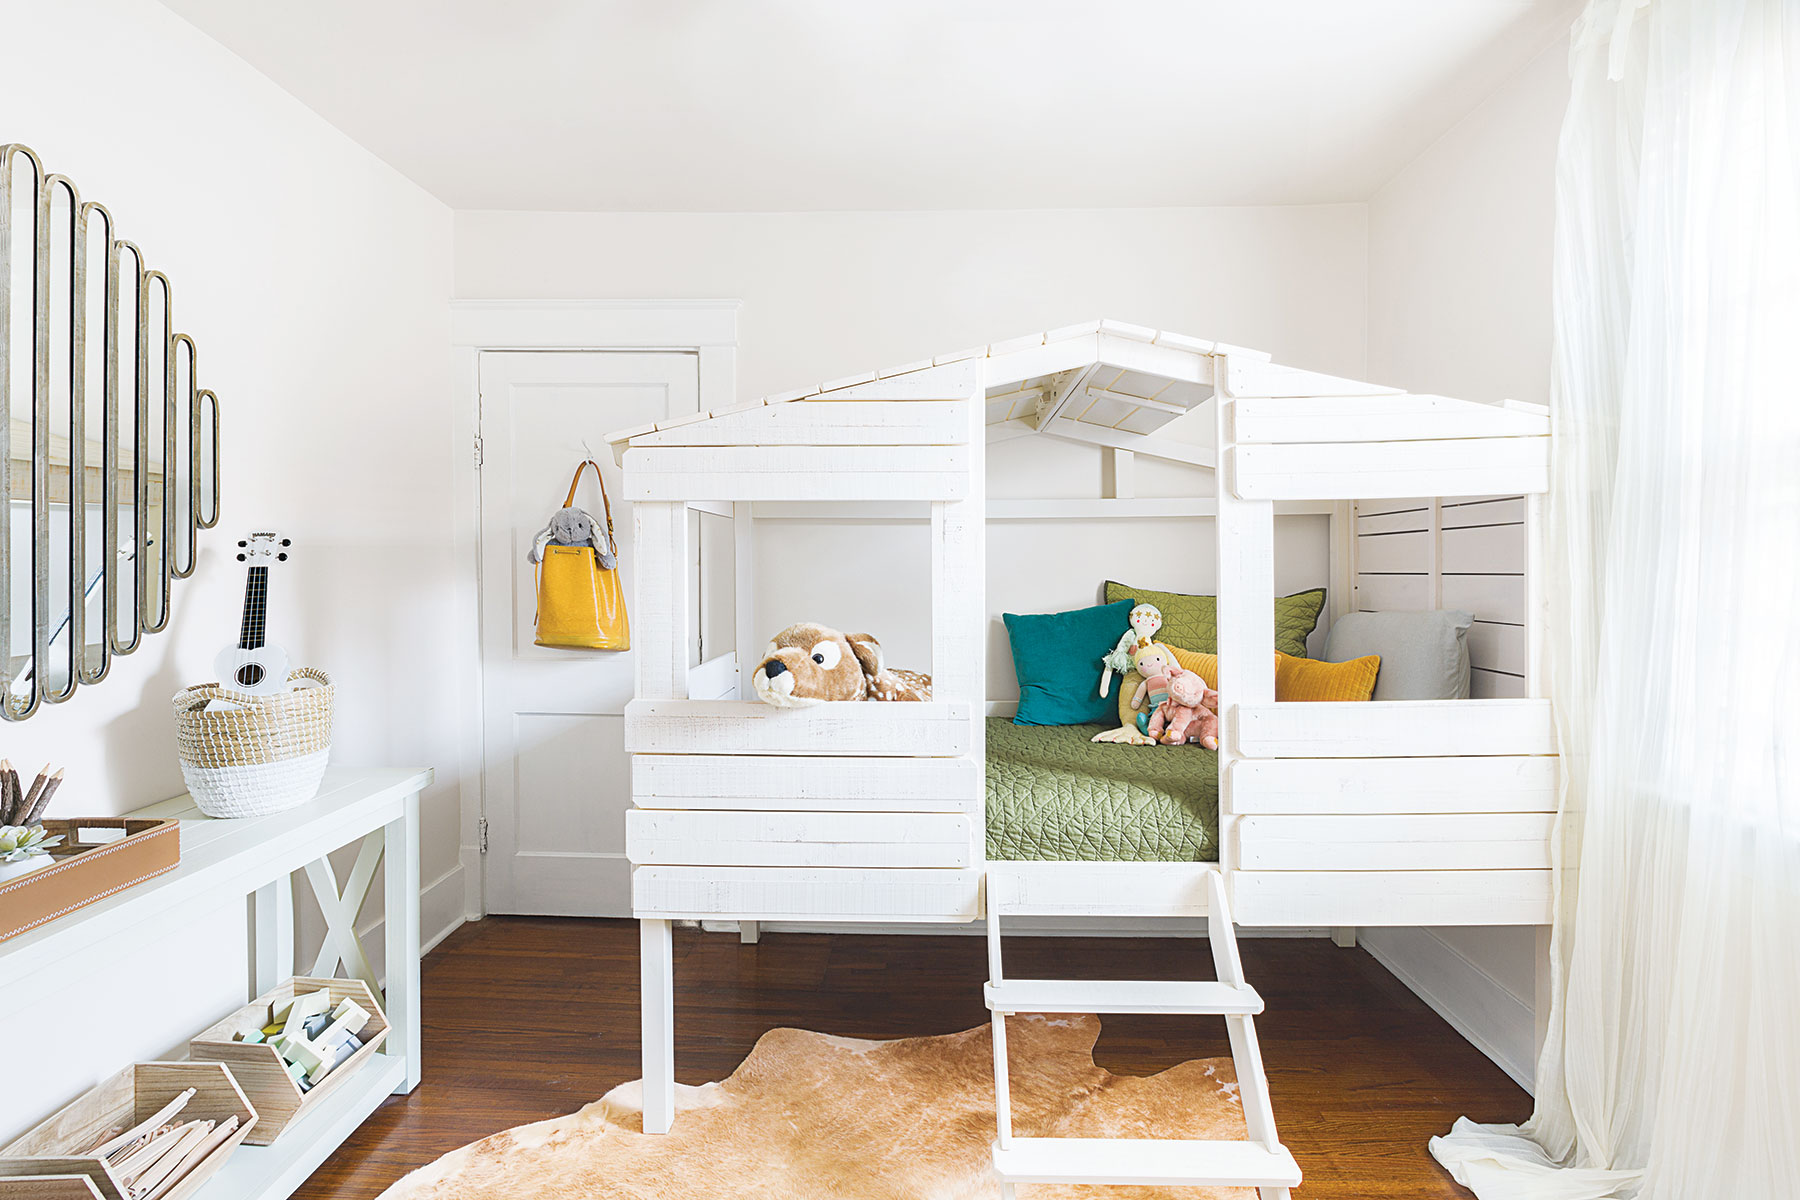 Decor Ideas for a Kid's Room - Real Simple